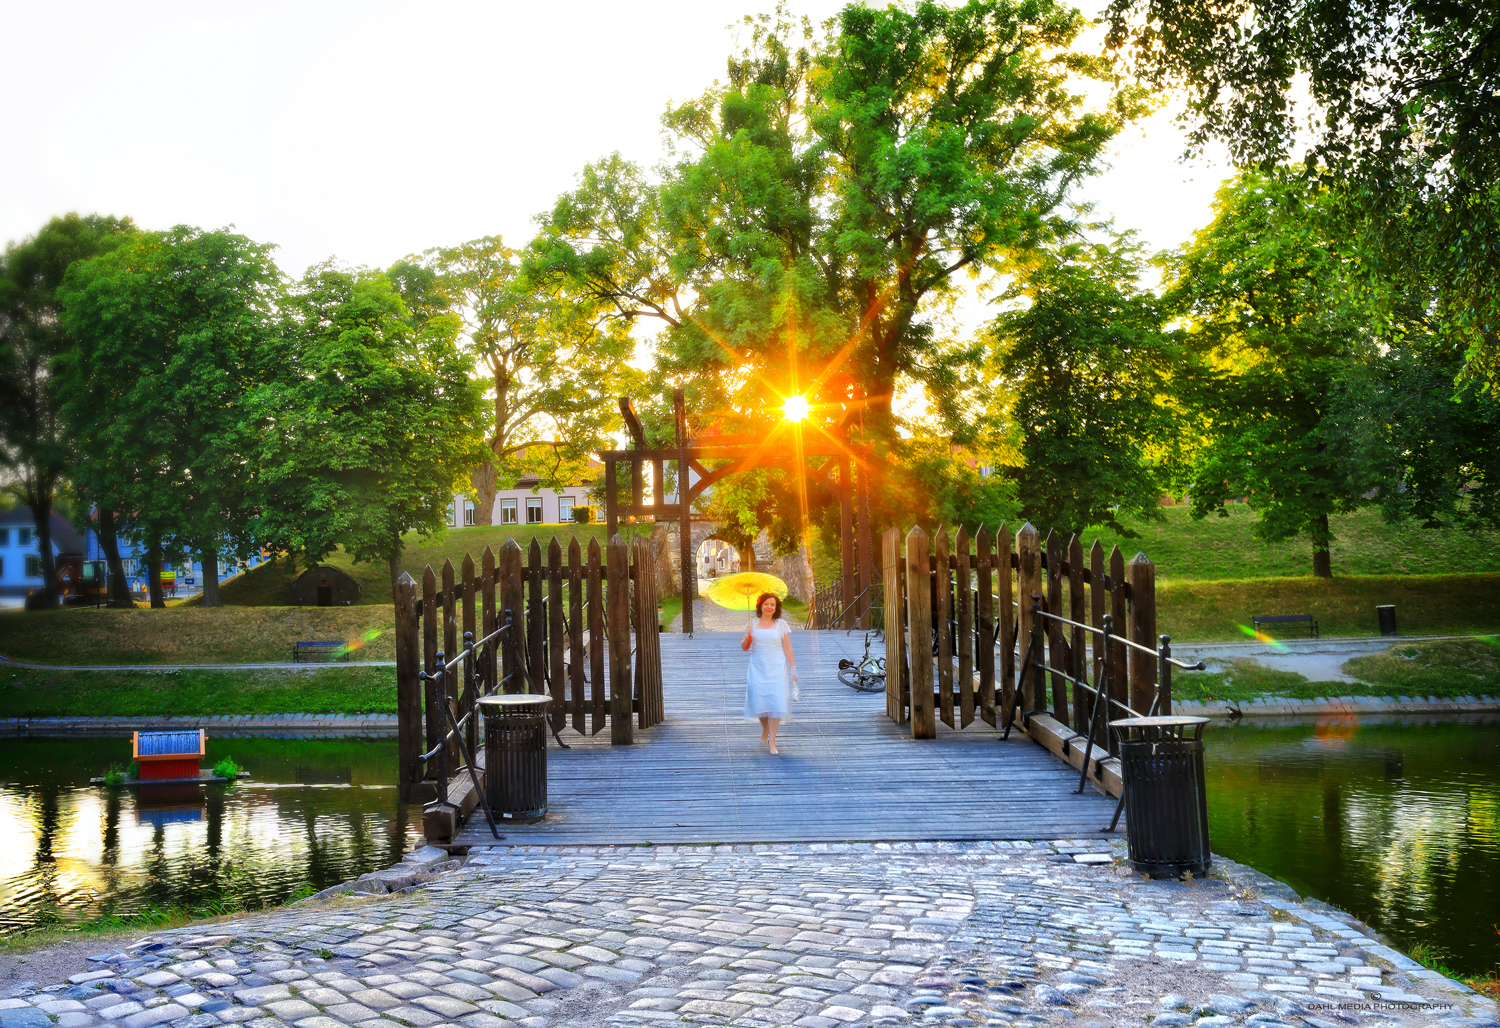 Fredrikstad is without    DOUBT    ONE OF    SCANDINAVIAS    most beautiful cities